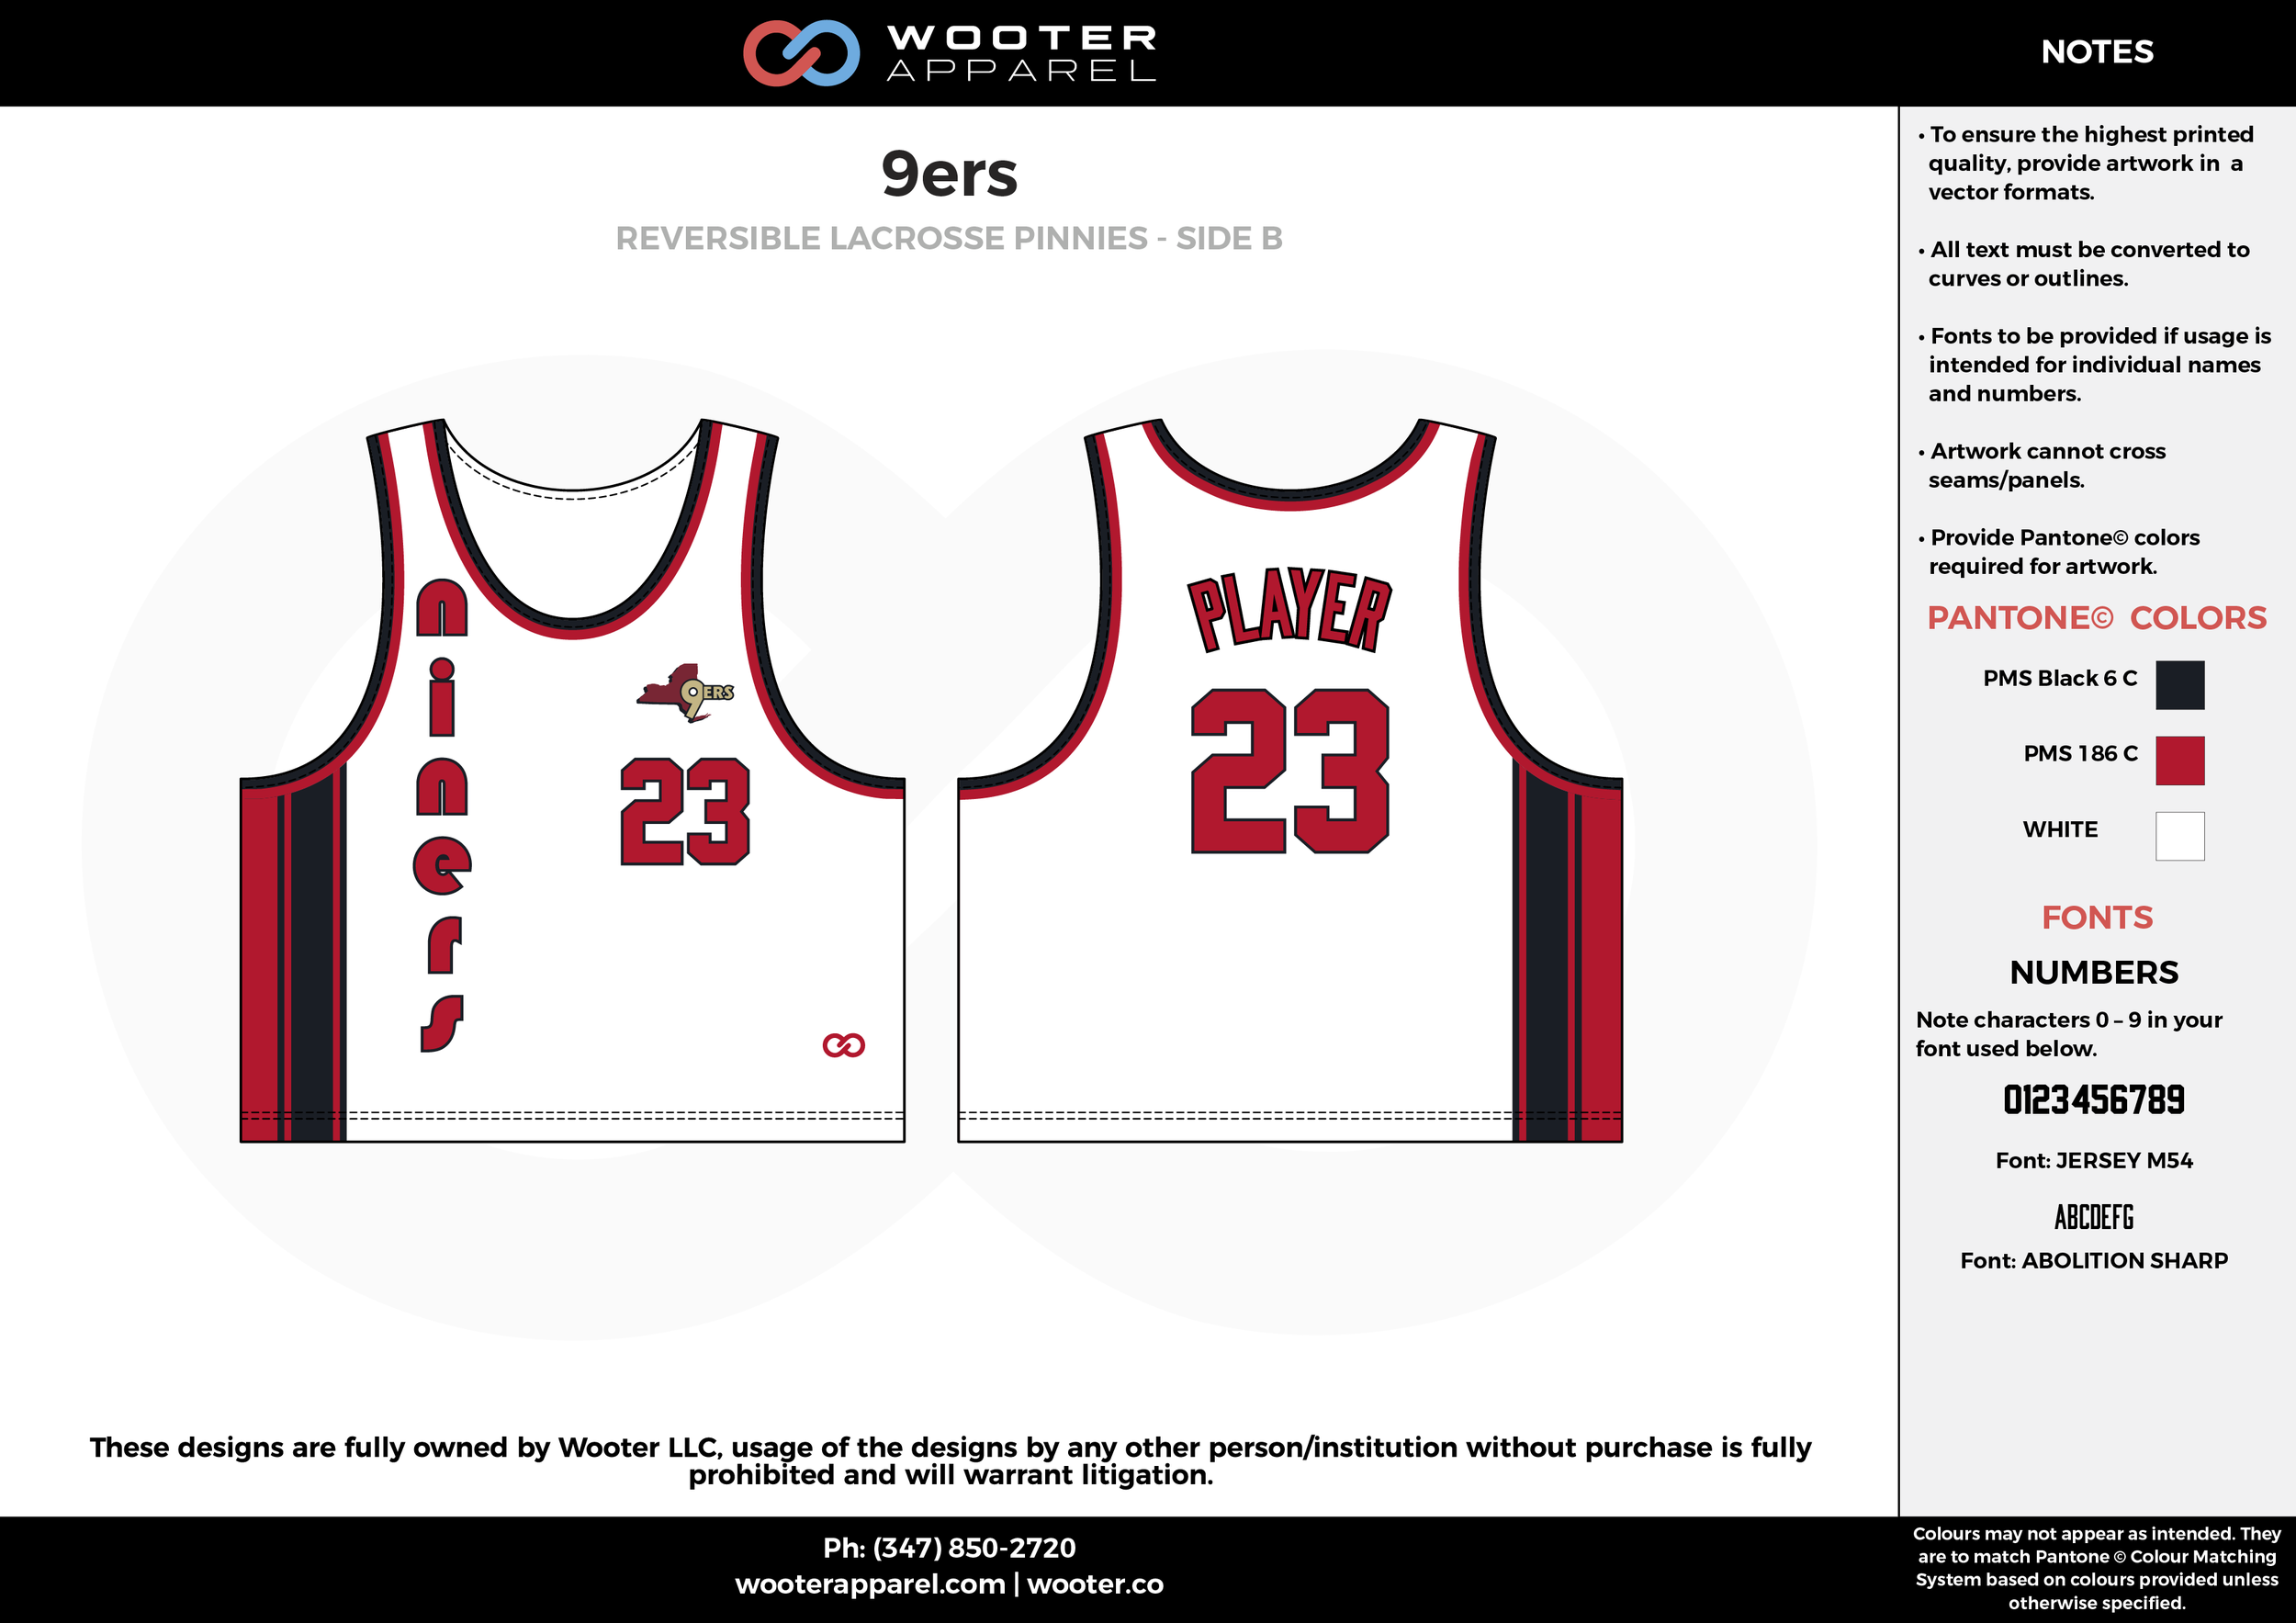 9ers Red Black and White Lacrosse Uniforms, Reversible Pinnies, Jerseys